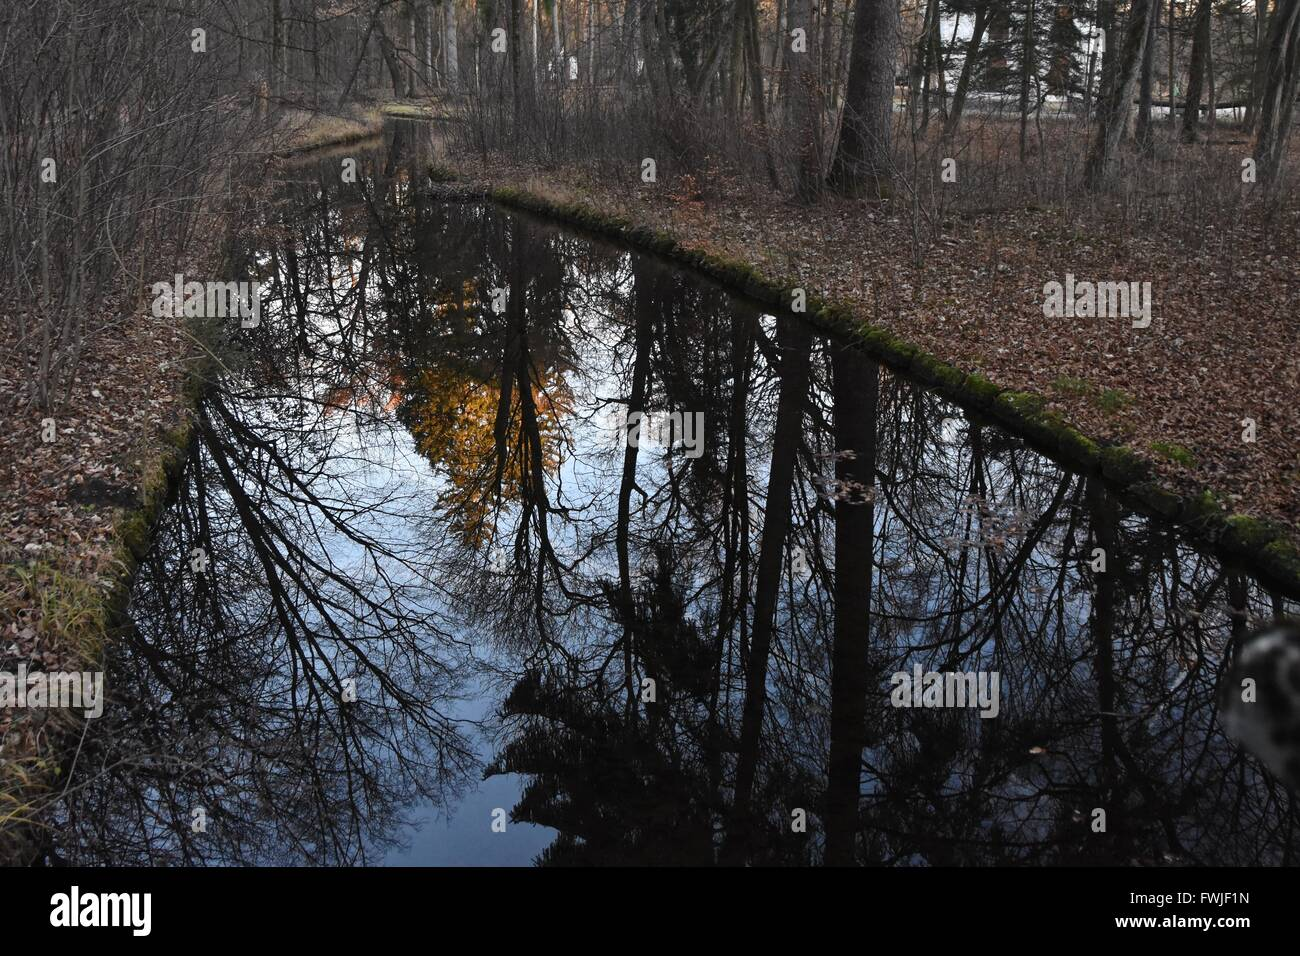 Trees Reflecting In Stream In Forest During Autumn - Stock Image